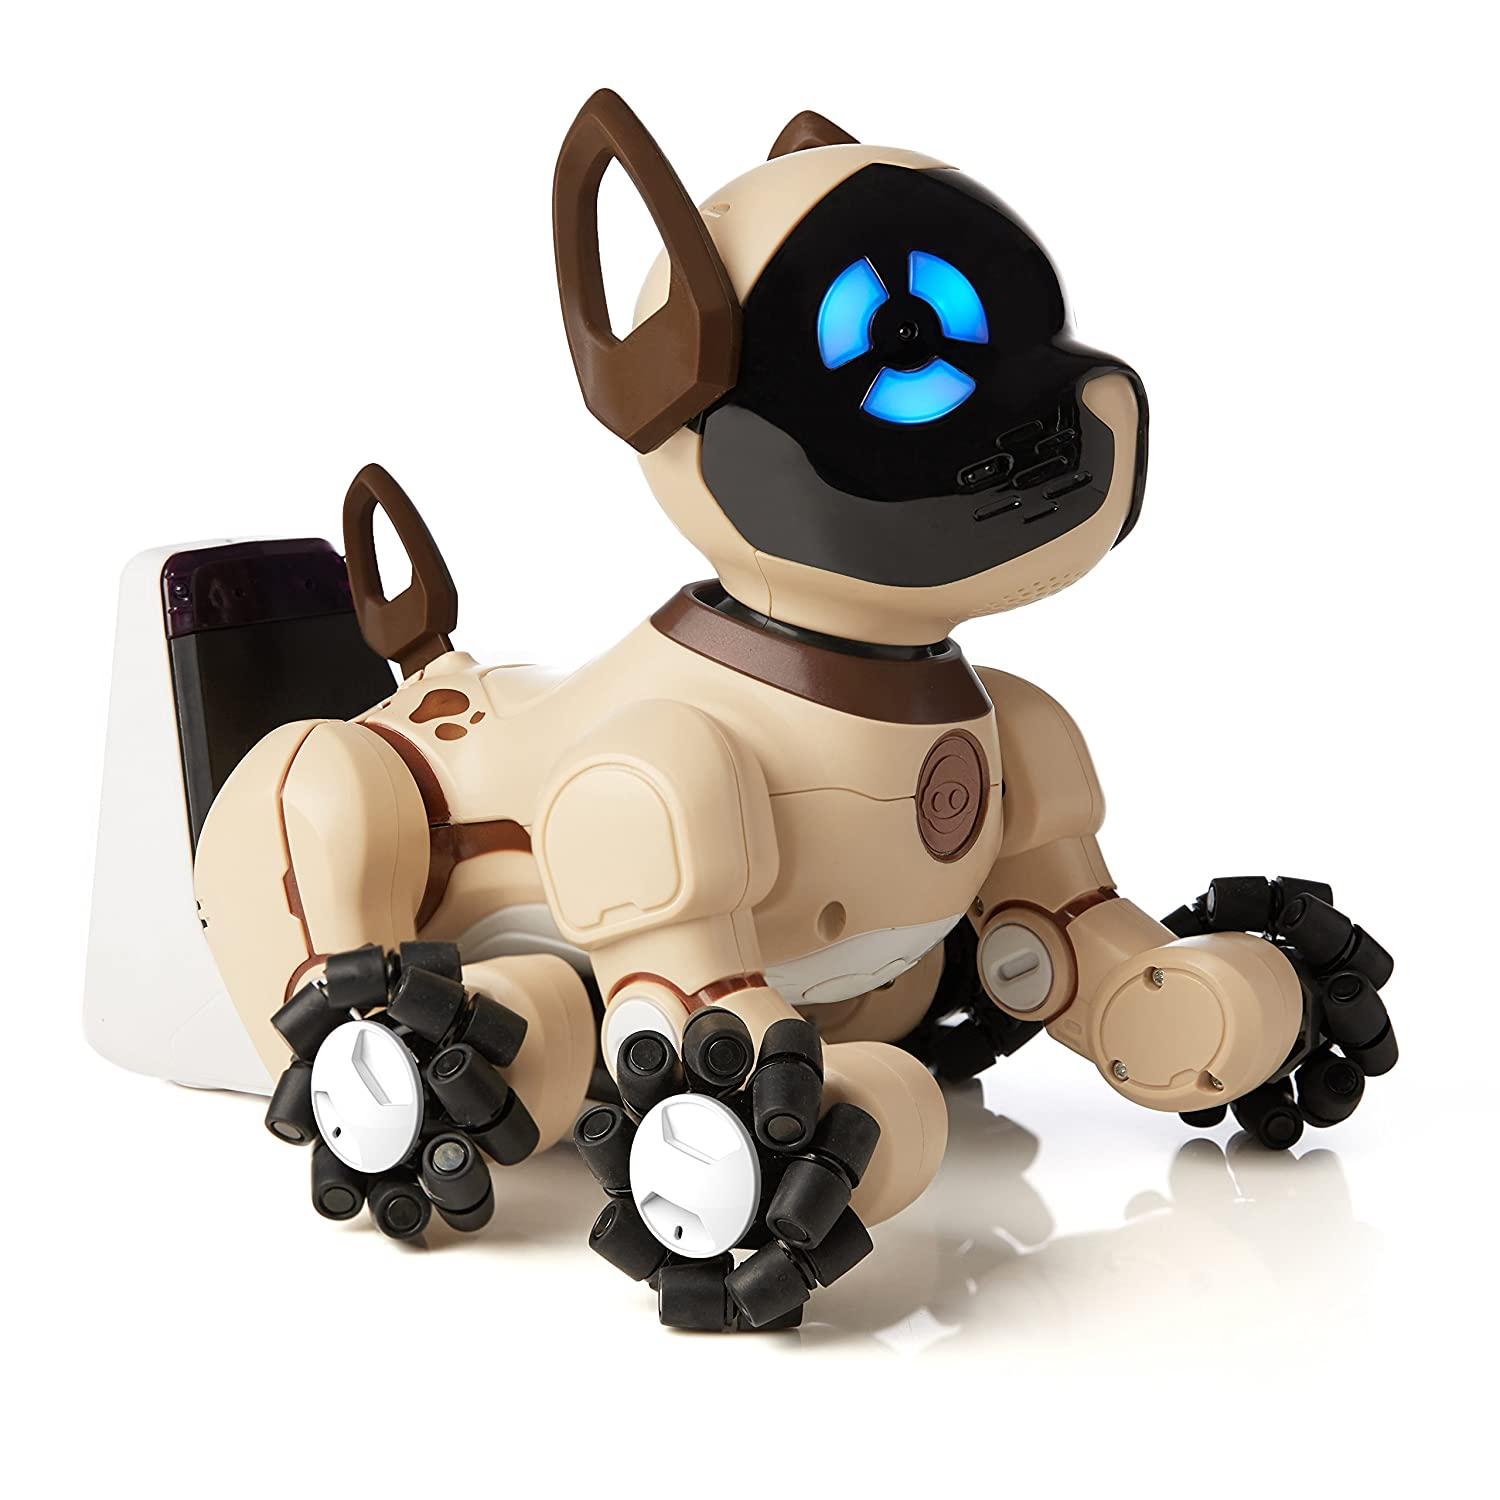 Amazon WowWee Chocolate CHiP Robot Toy Dog Amazon Exclusive